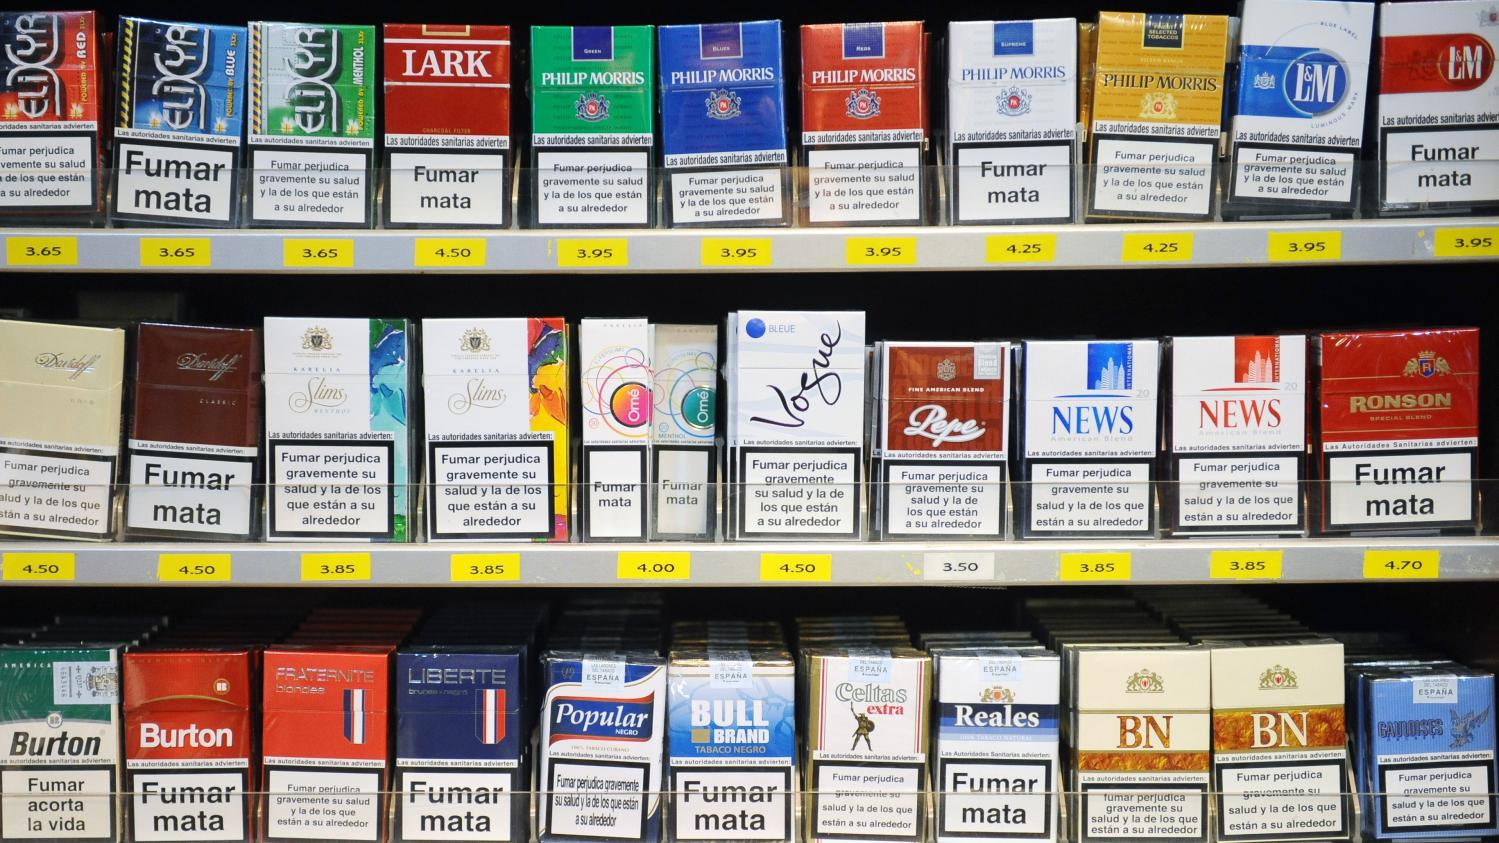 Le quota de cigarette par pays sur info-quotas.fr